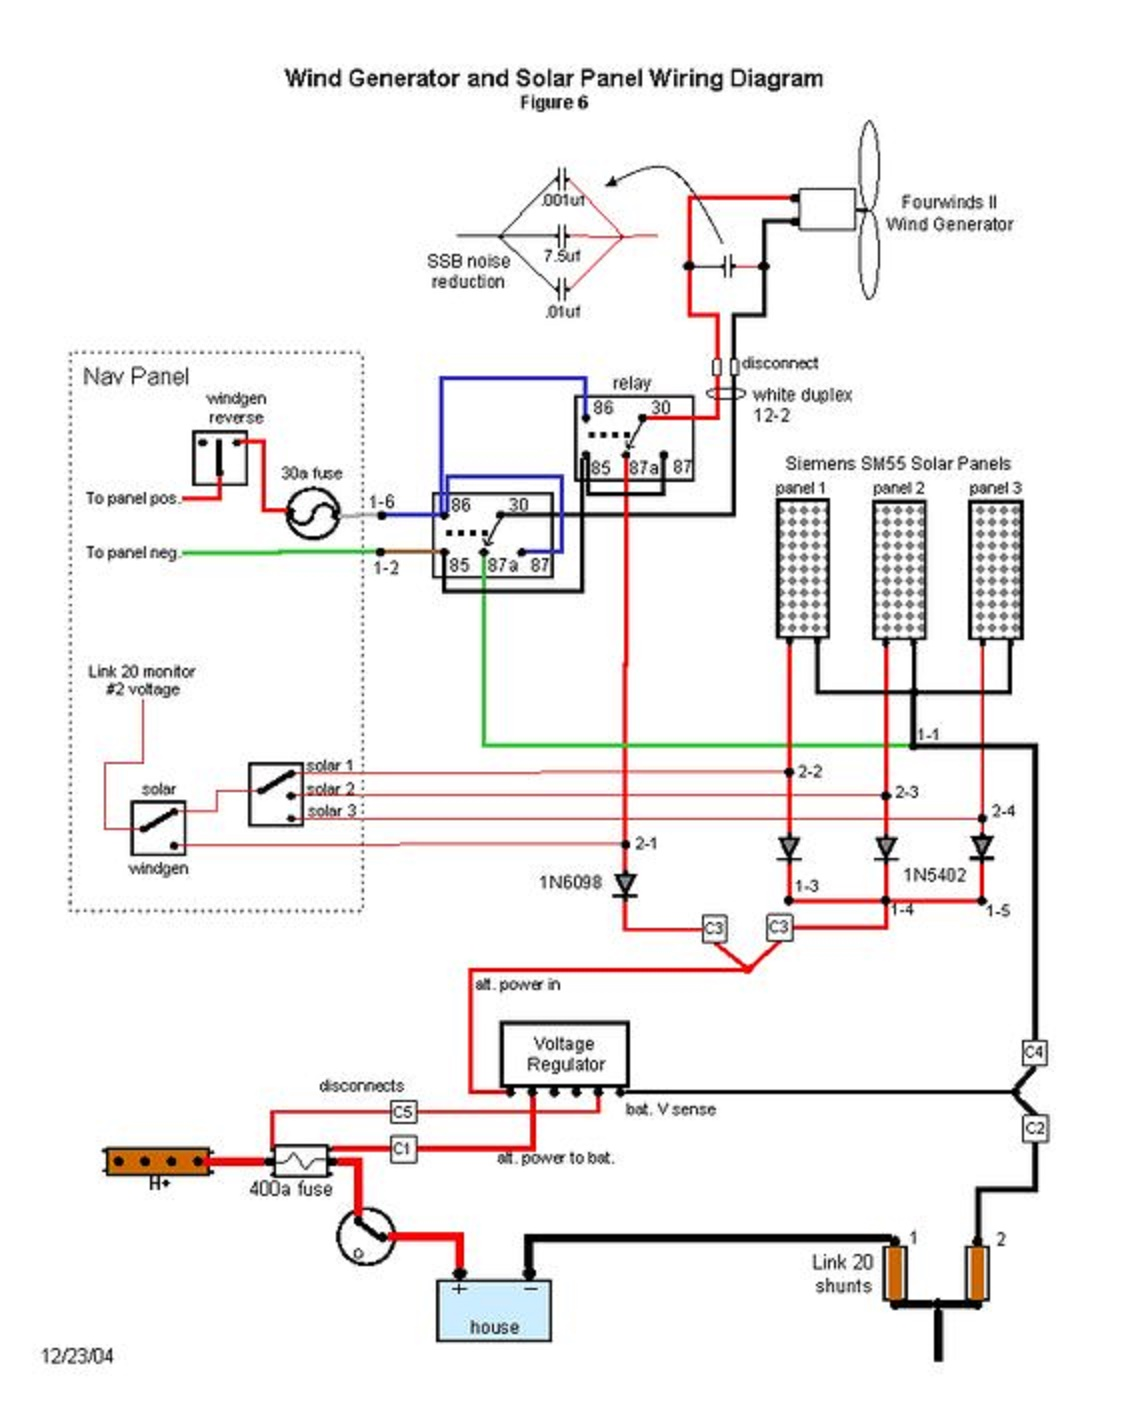 Wind Turbine Generator Wiring Diagram Ge Profile Refrigerator Parts Electrical And Electronics Engineering Powered